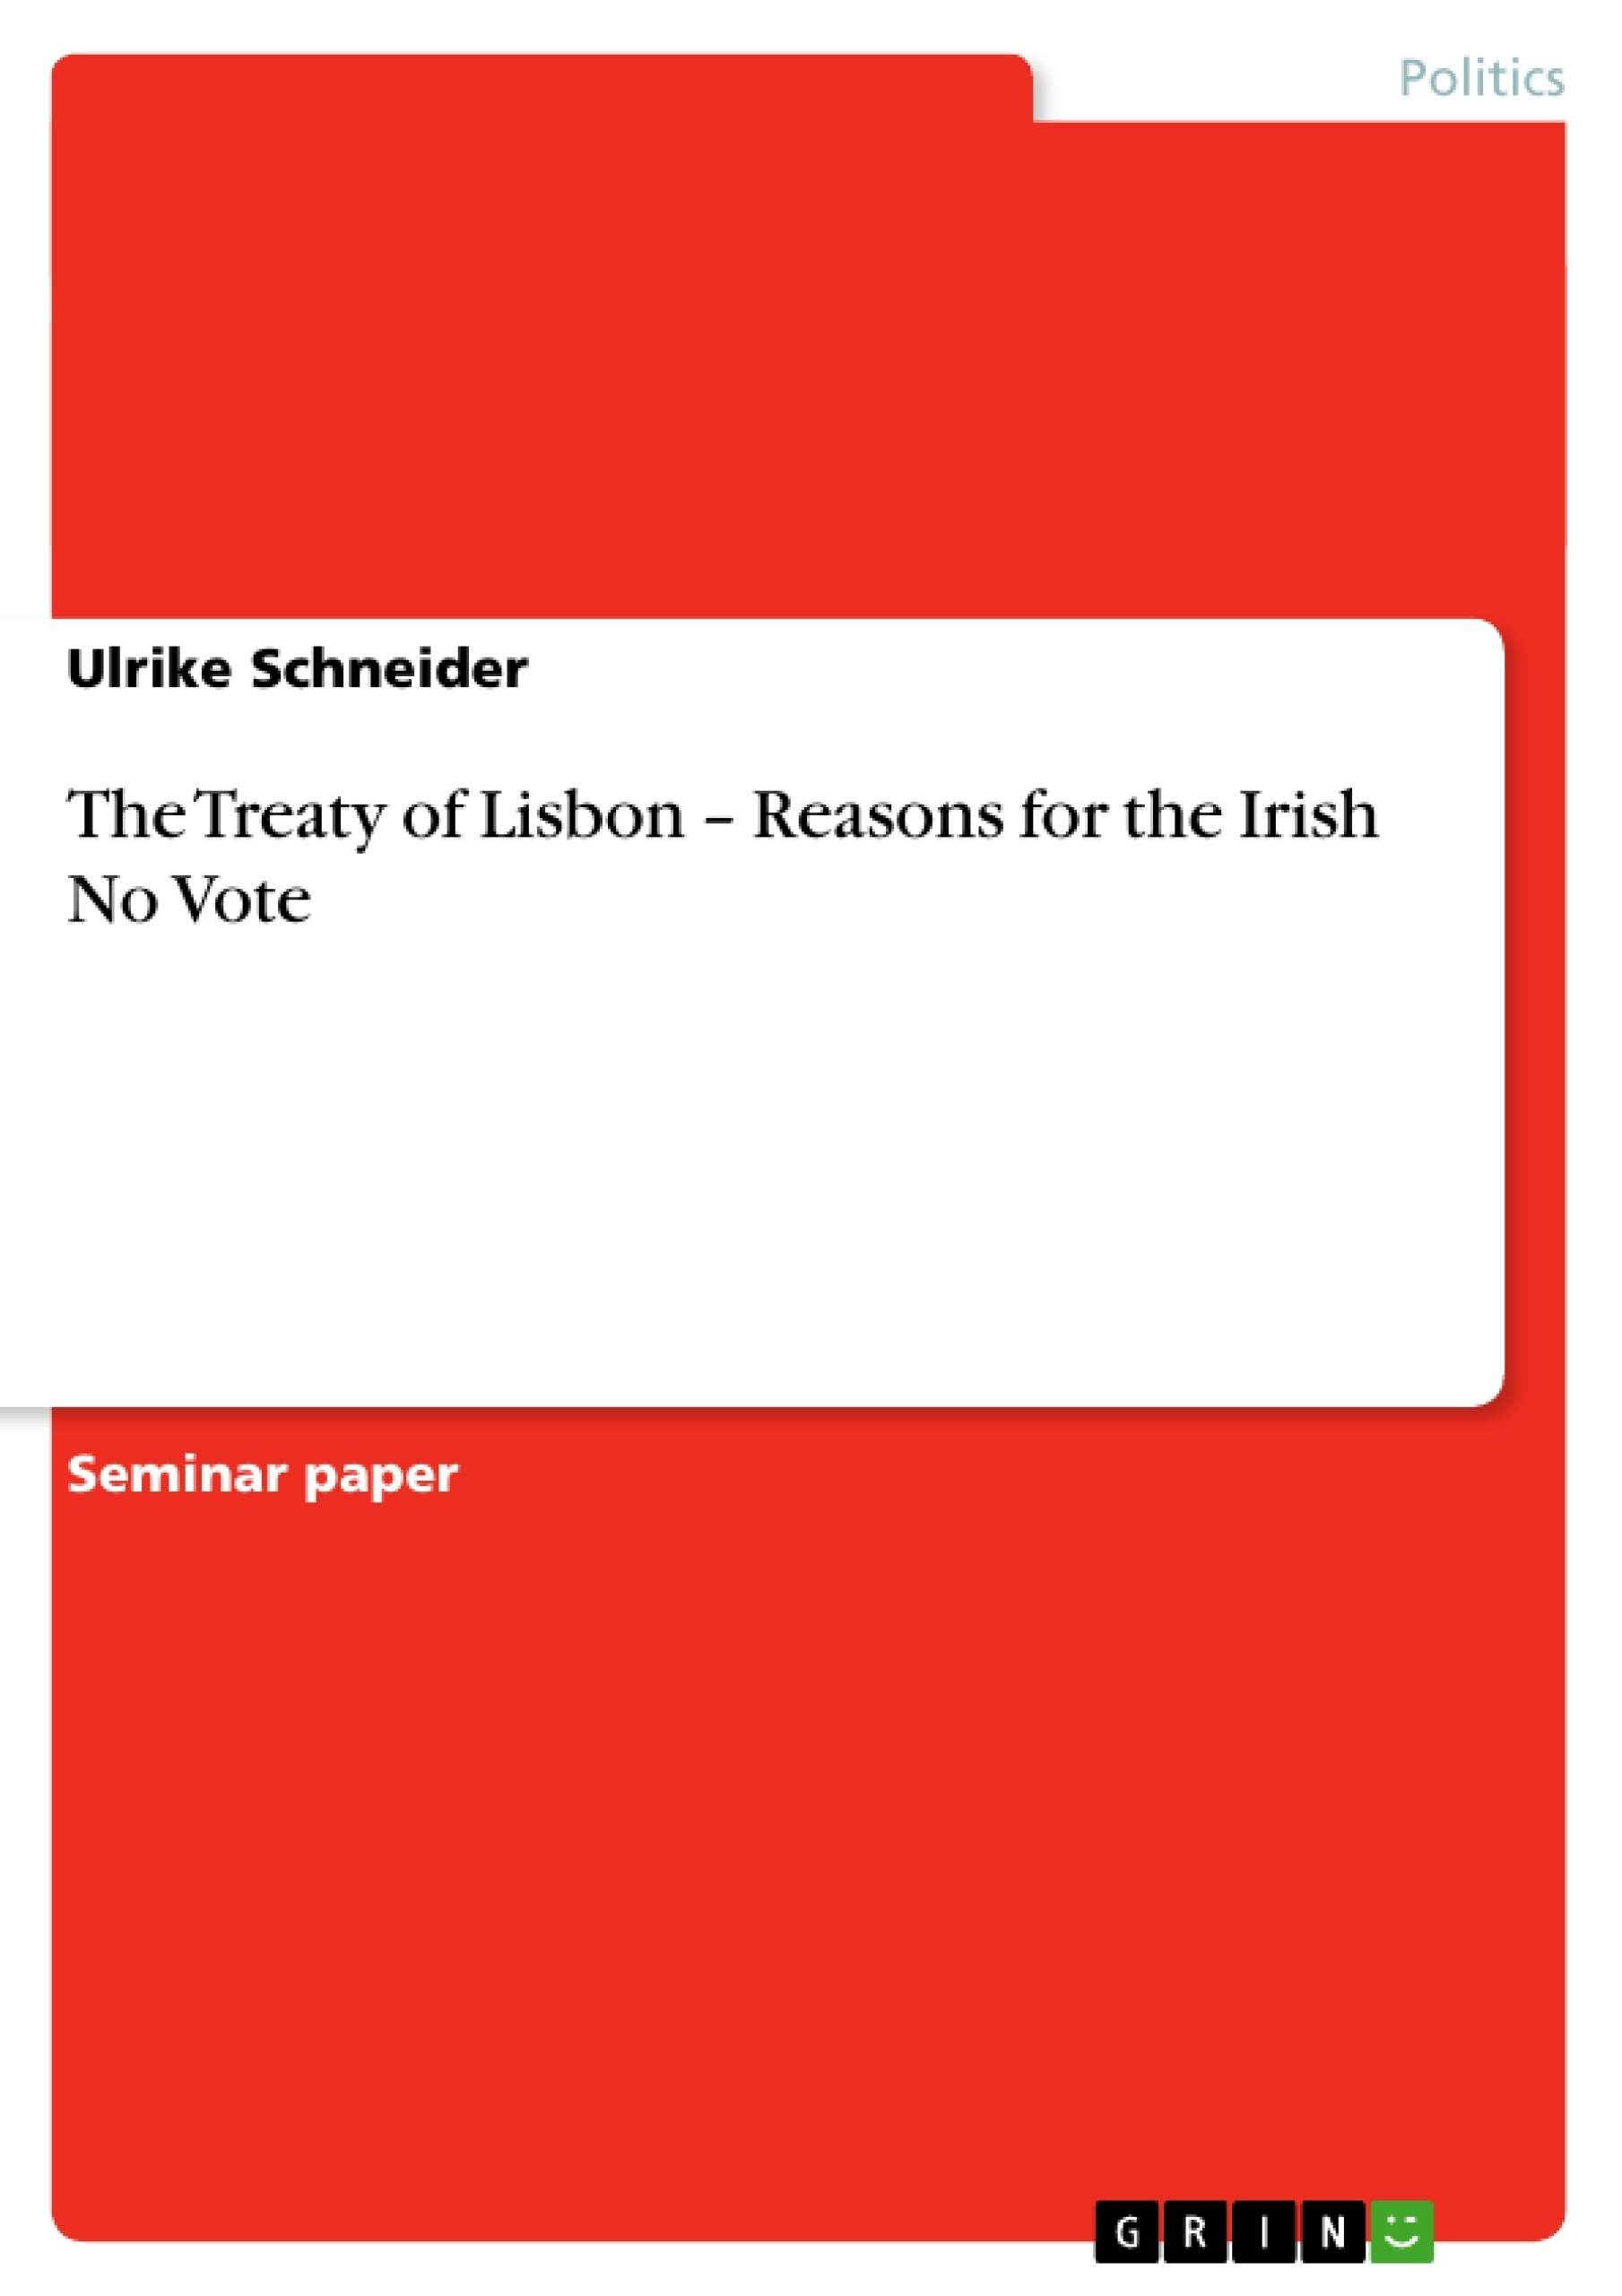 Title: The Treaty of Lisbon – Reasons for the Irish No Vote